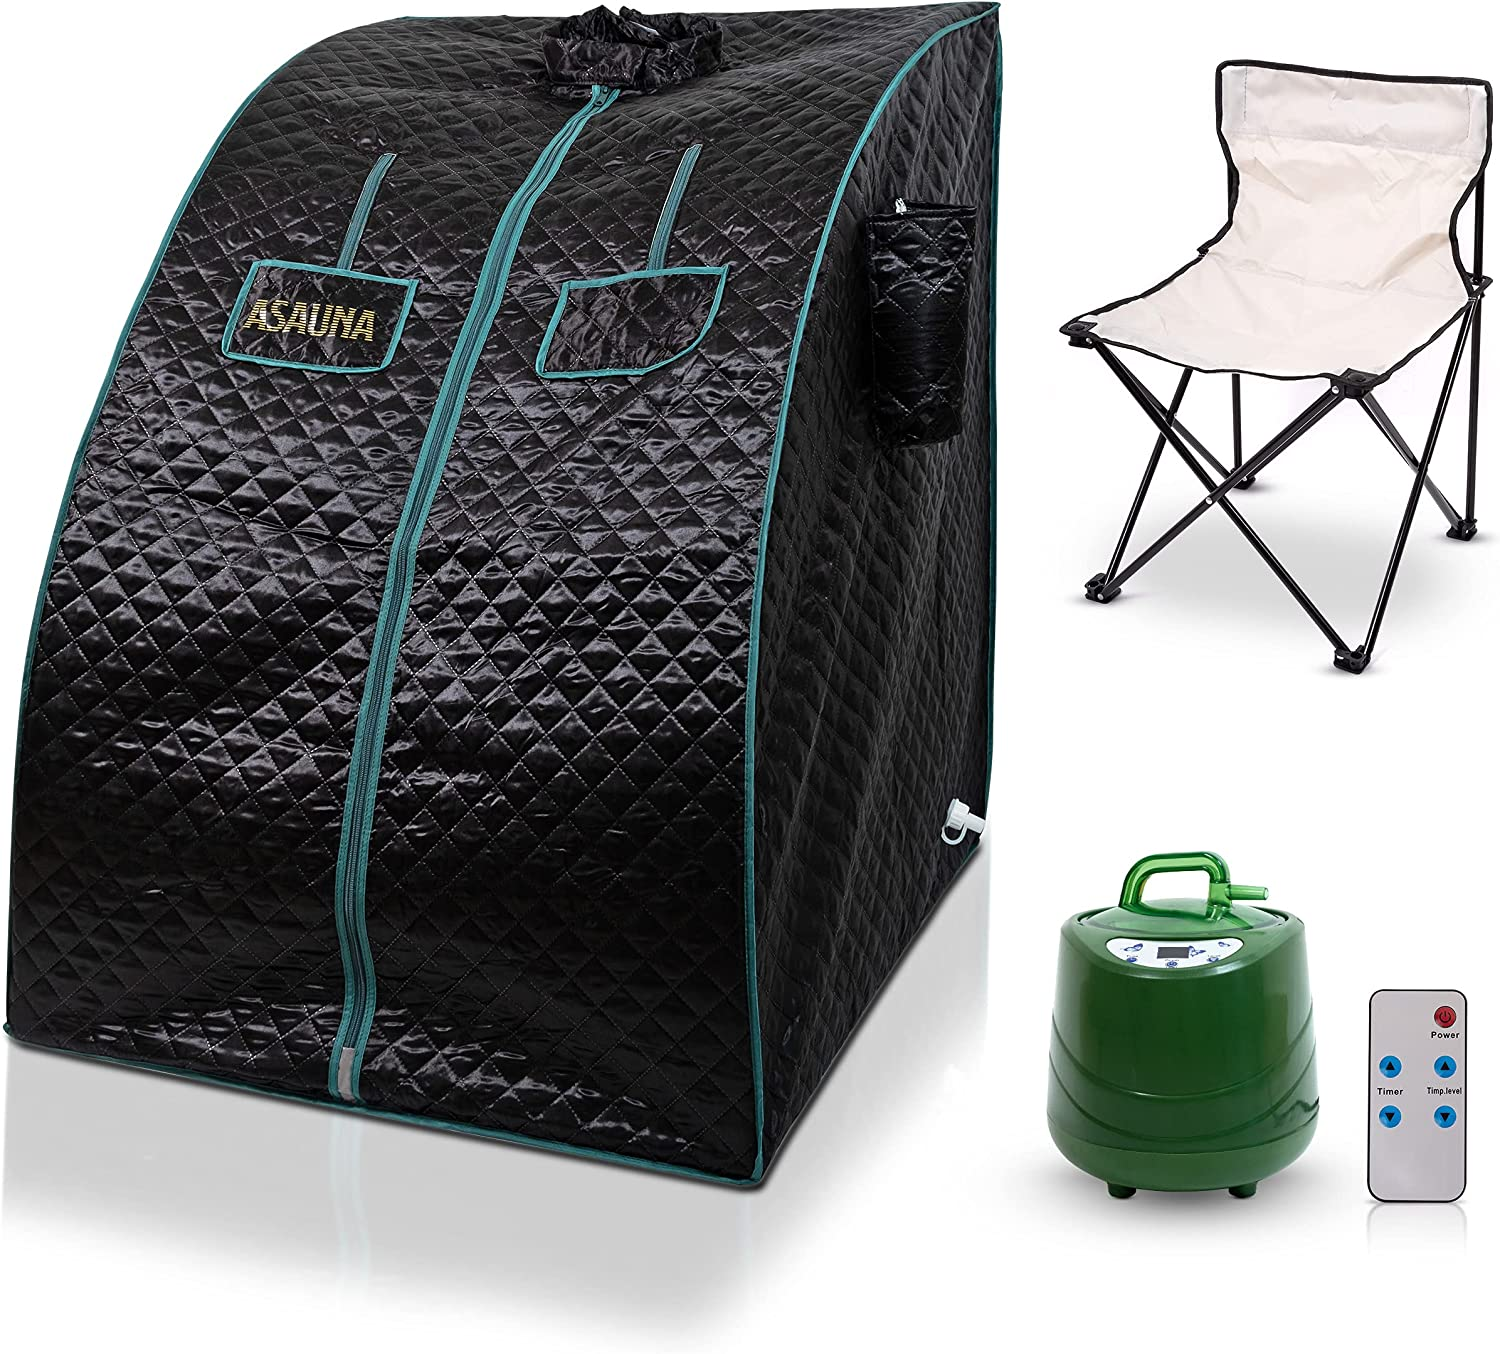 Asauna Portable Large-scale sale Steam Sauna Home fo All items free shipping Personal Lightweight